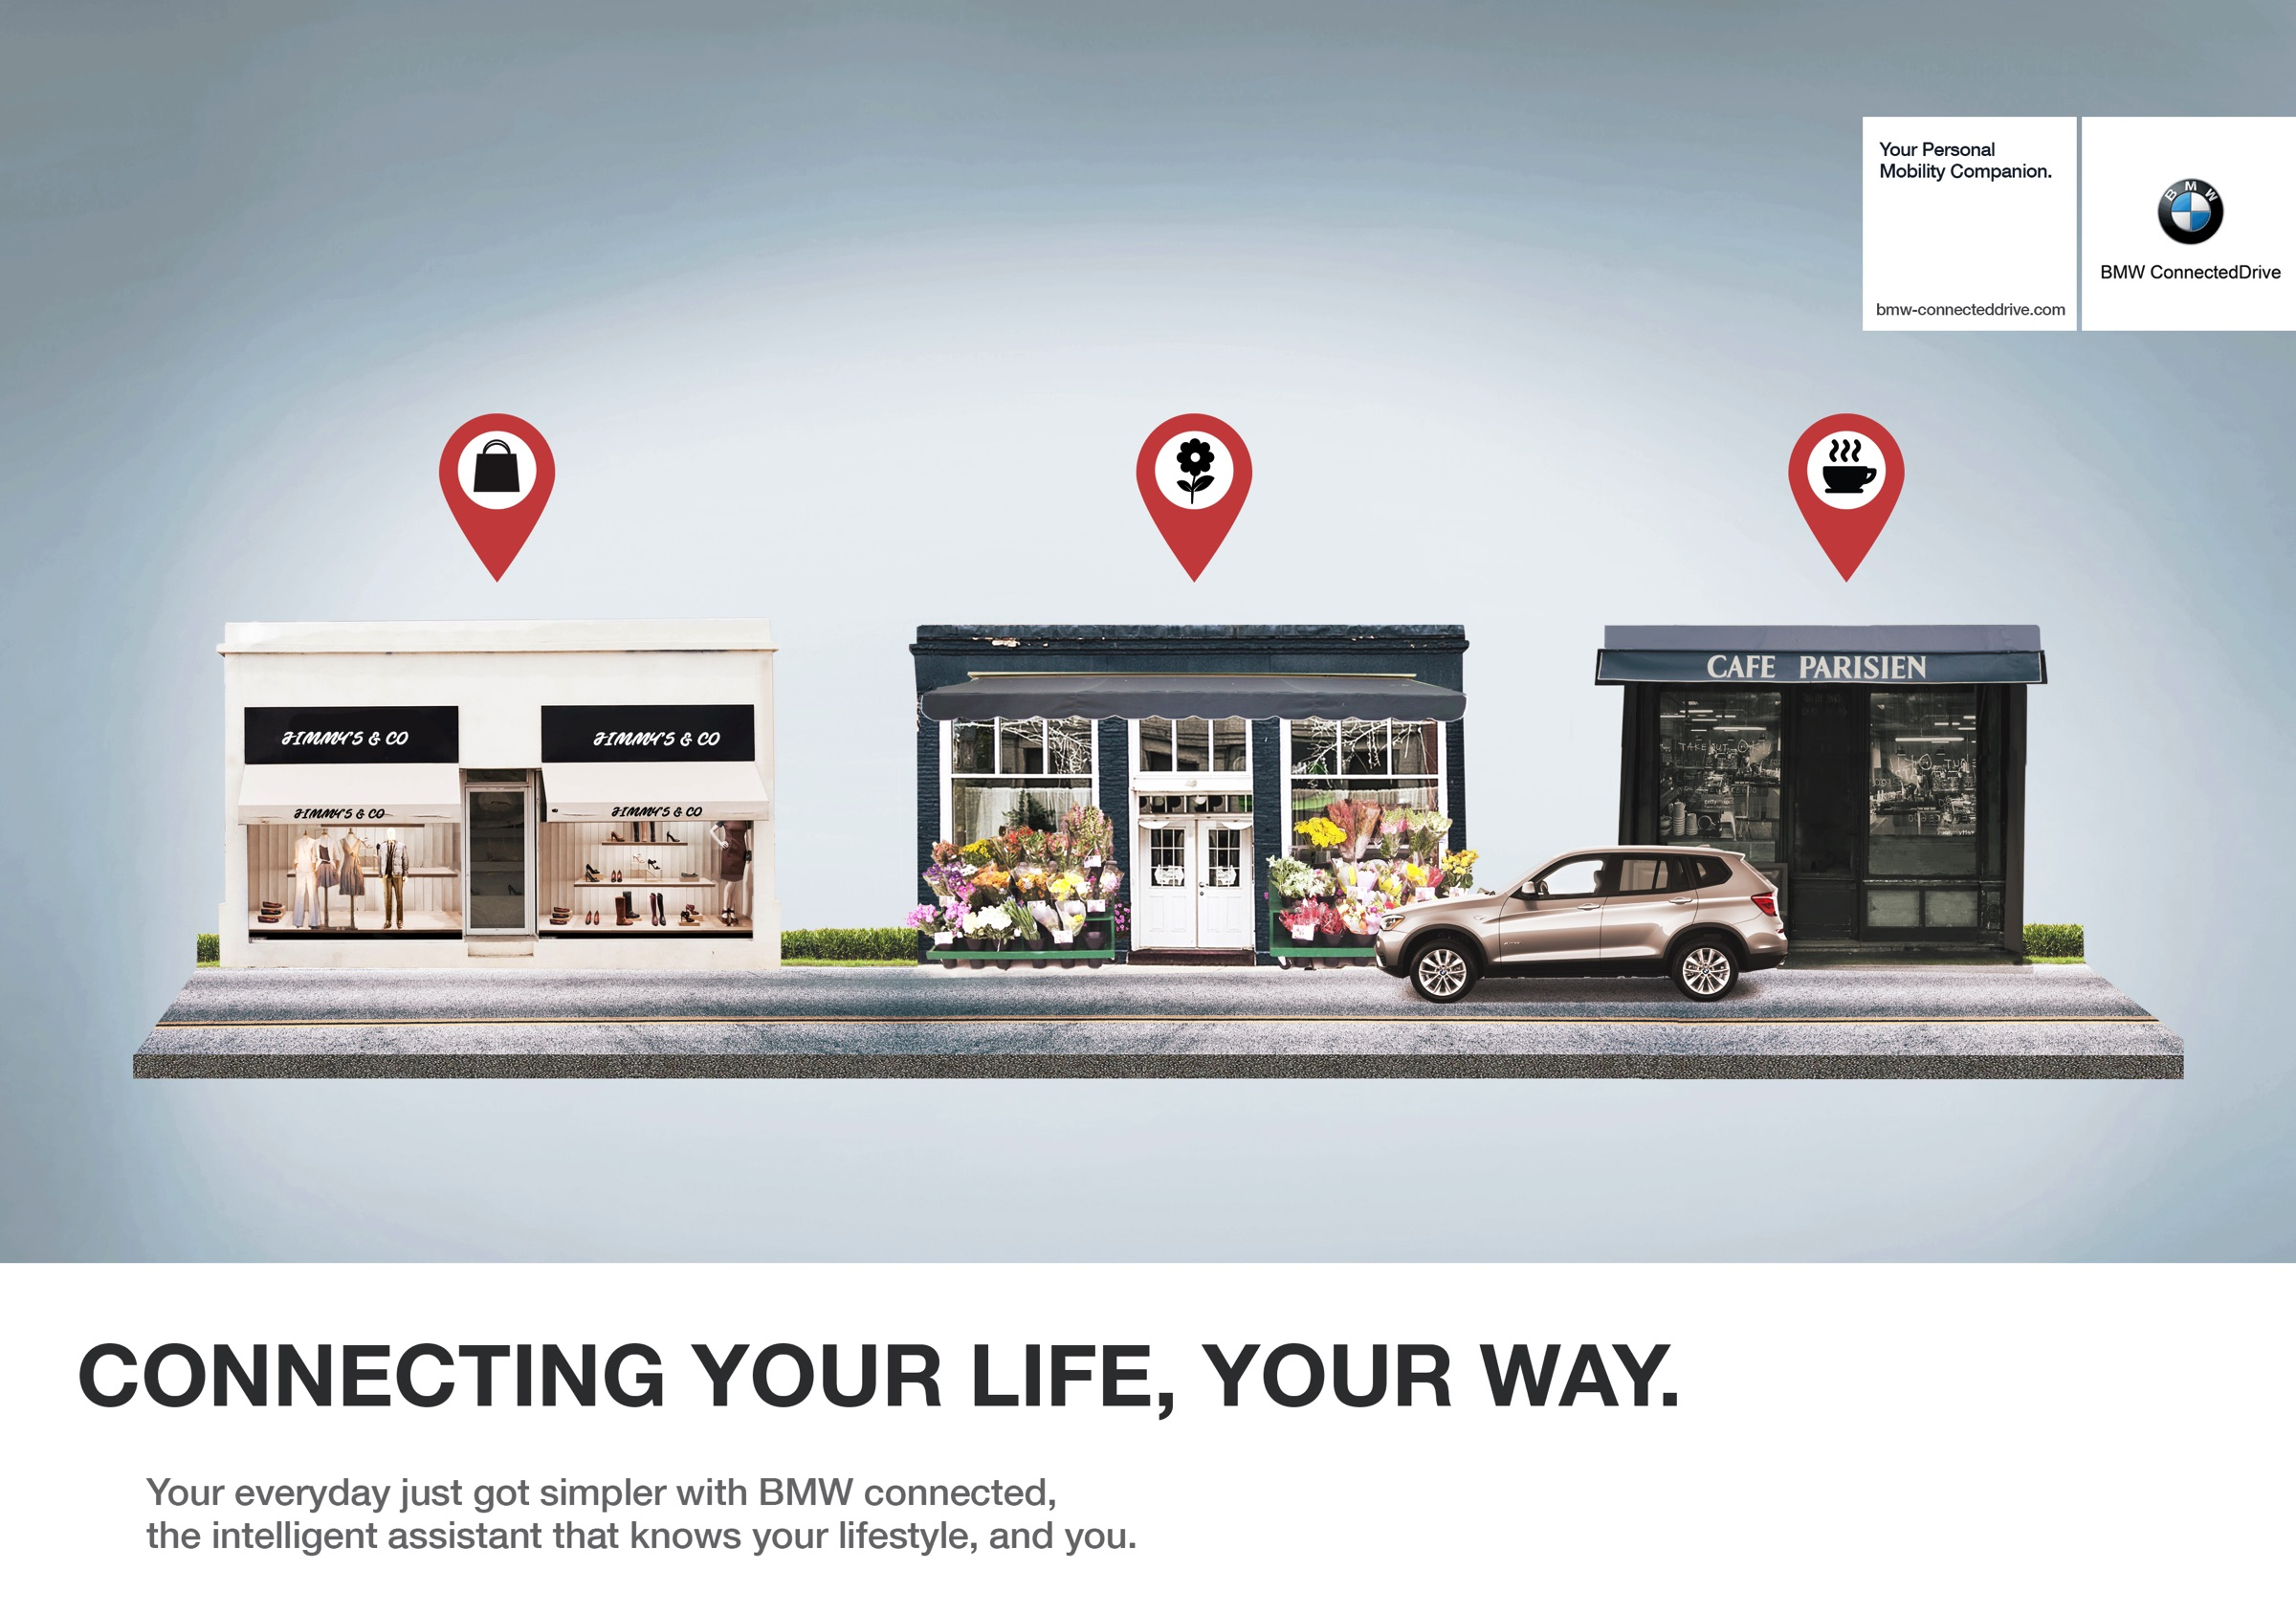 bmw print advert by miami ad school connected drive 1. Black Bedroom Furniture Sets. Home Design Ideas